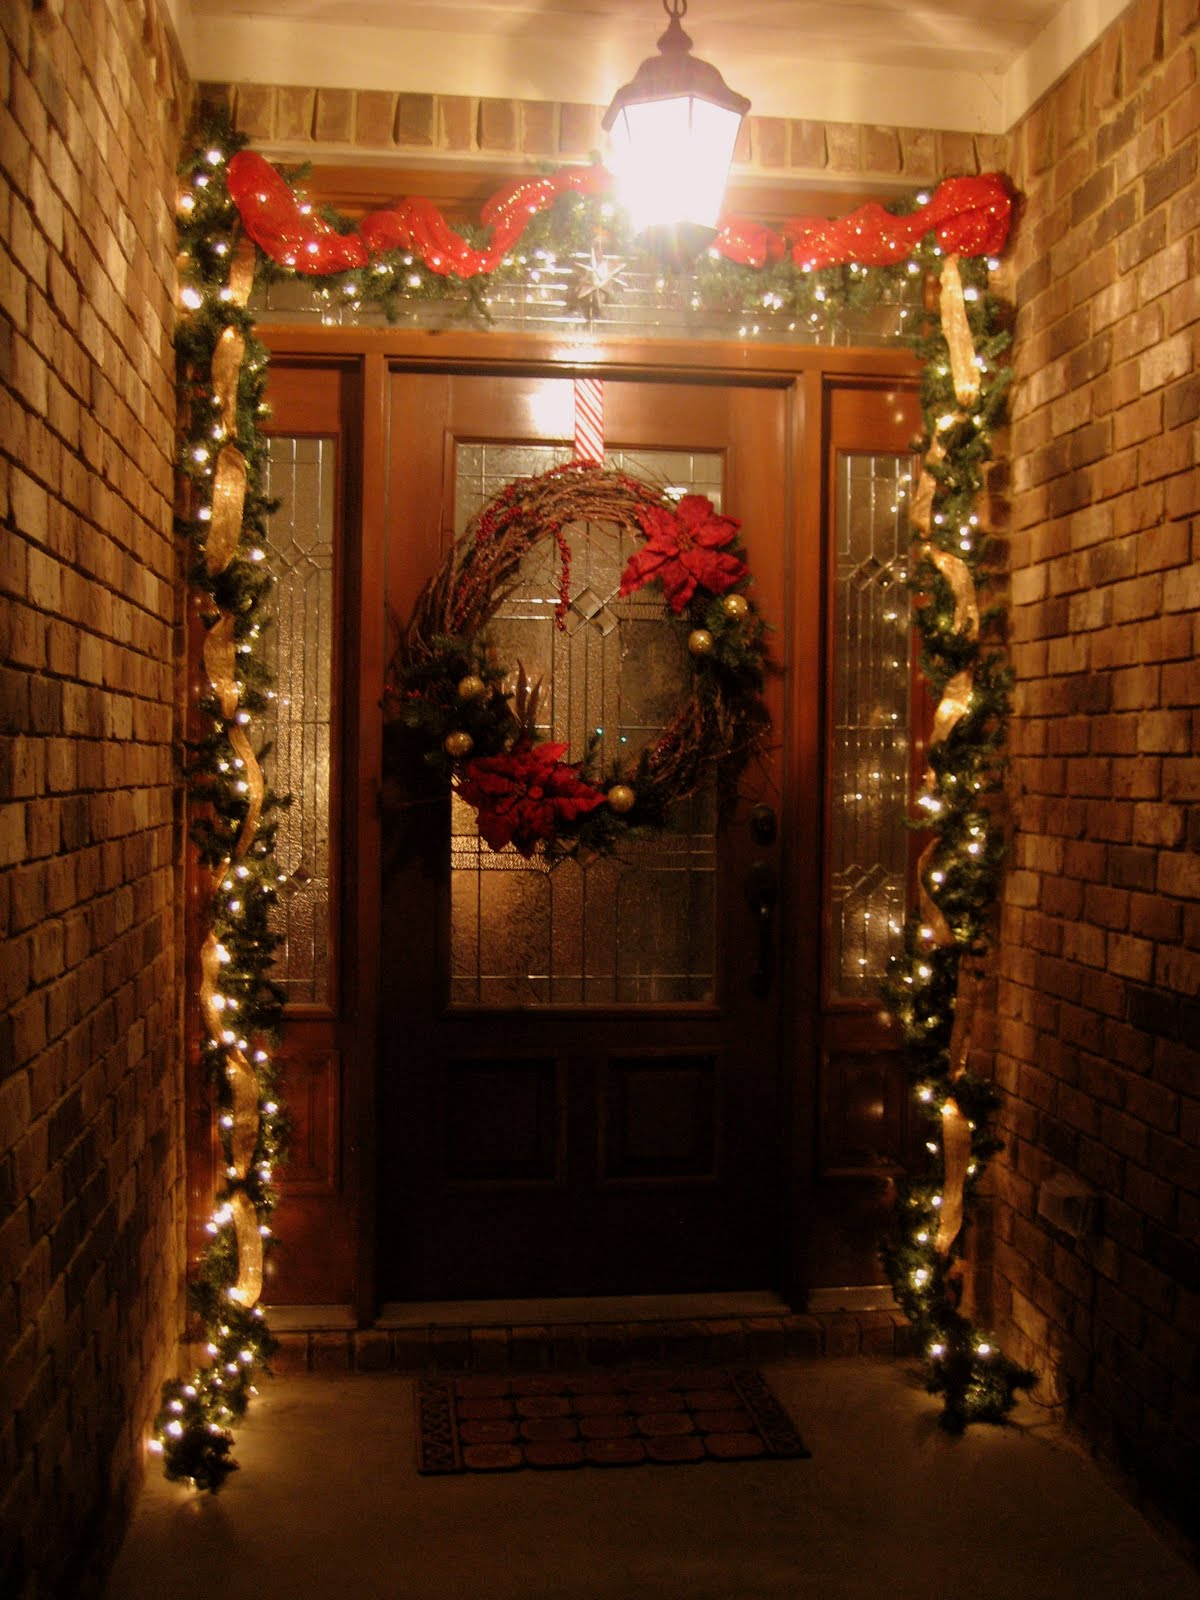 35 front door christmas decorations ideas for Beautiful house decoration